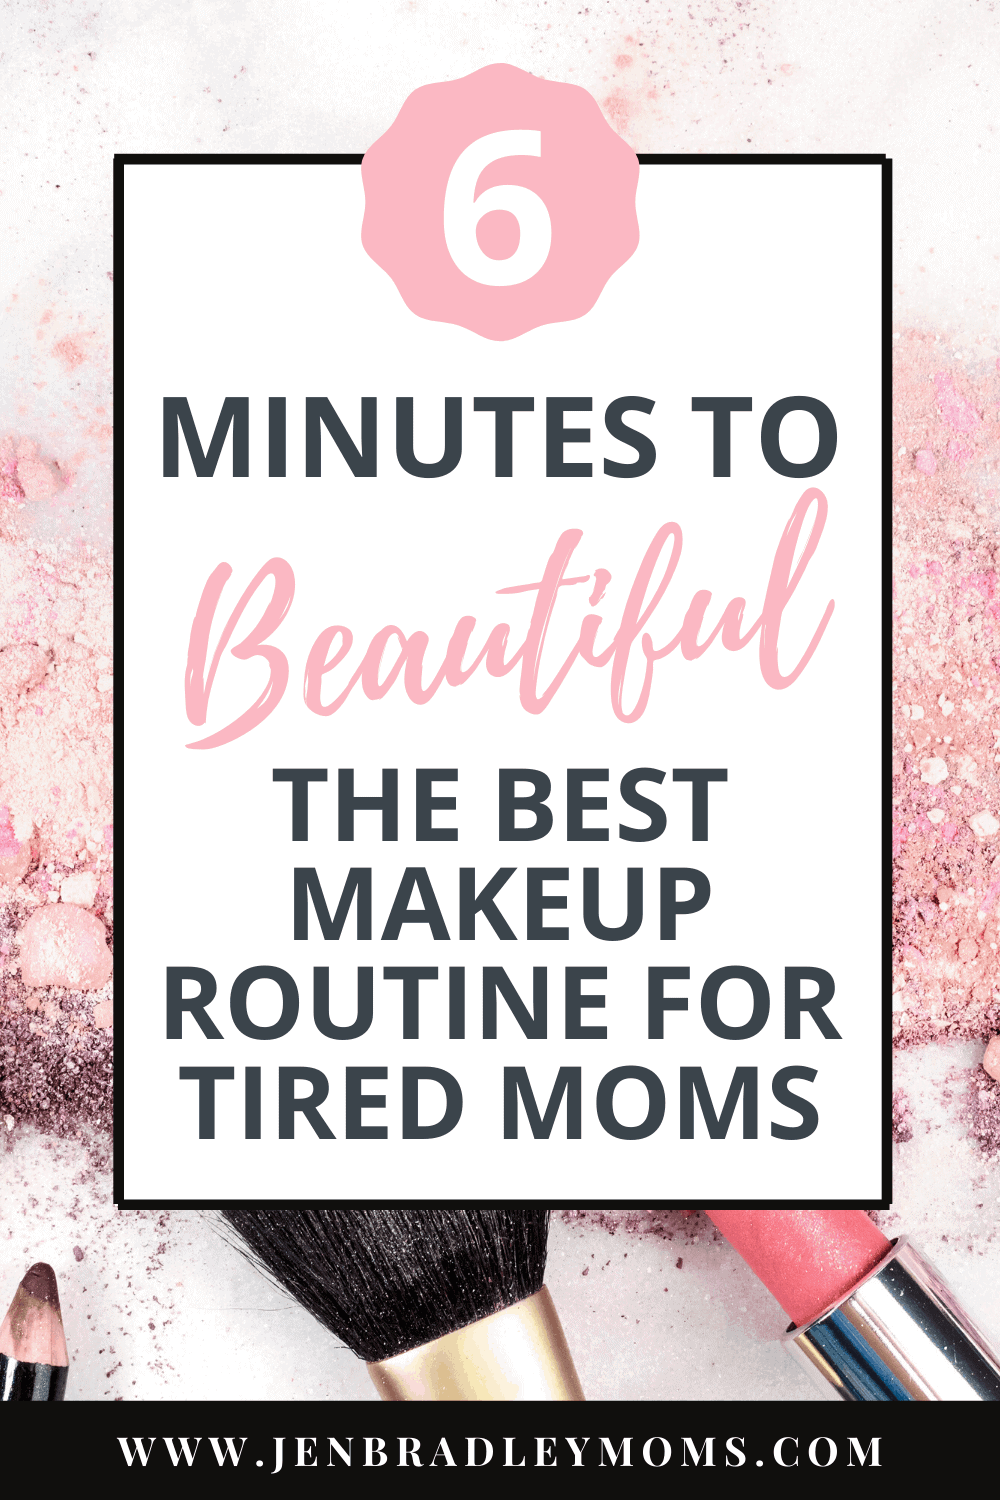 6 Minutes to Beautiful: The Best Makeup Routine for Tired Moms